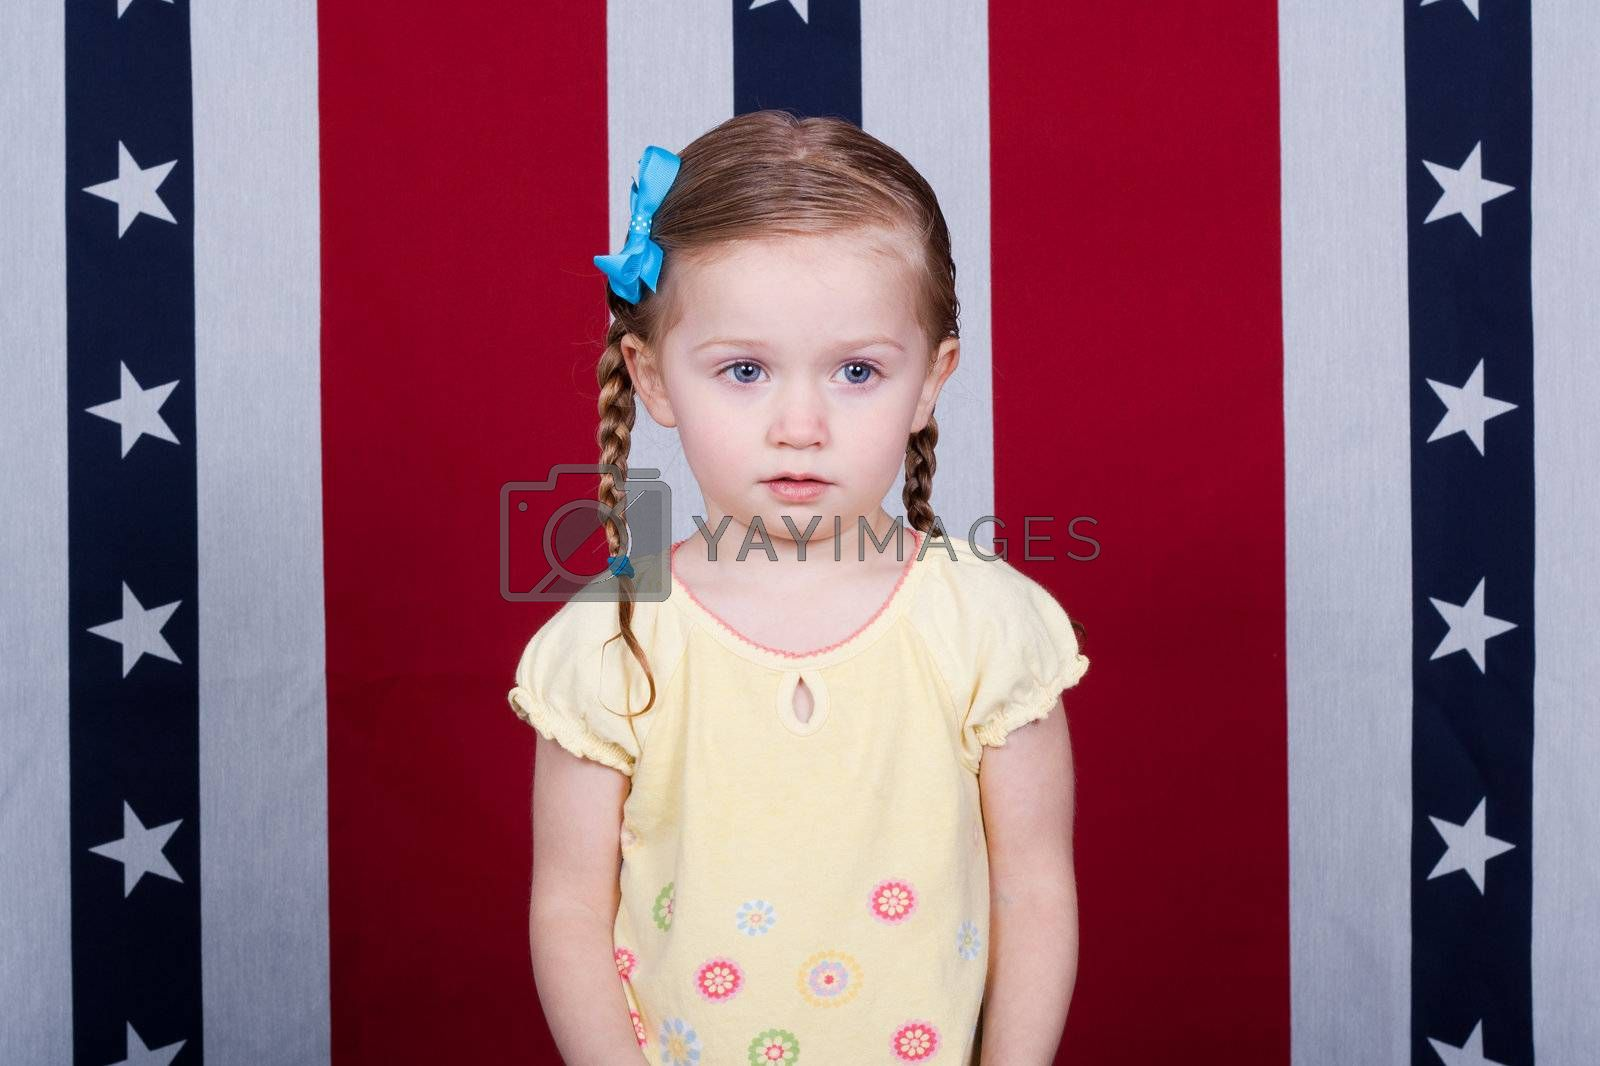 A confused child standing in front of an American Flag style background.